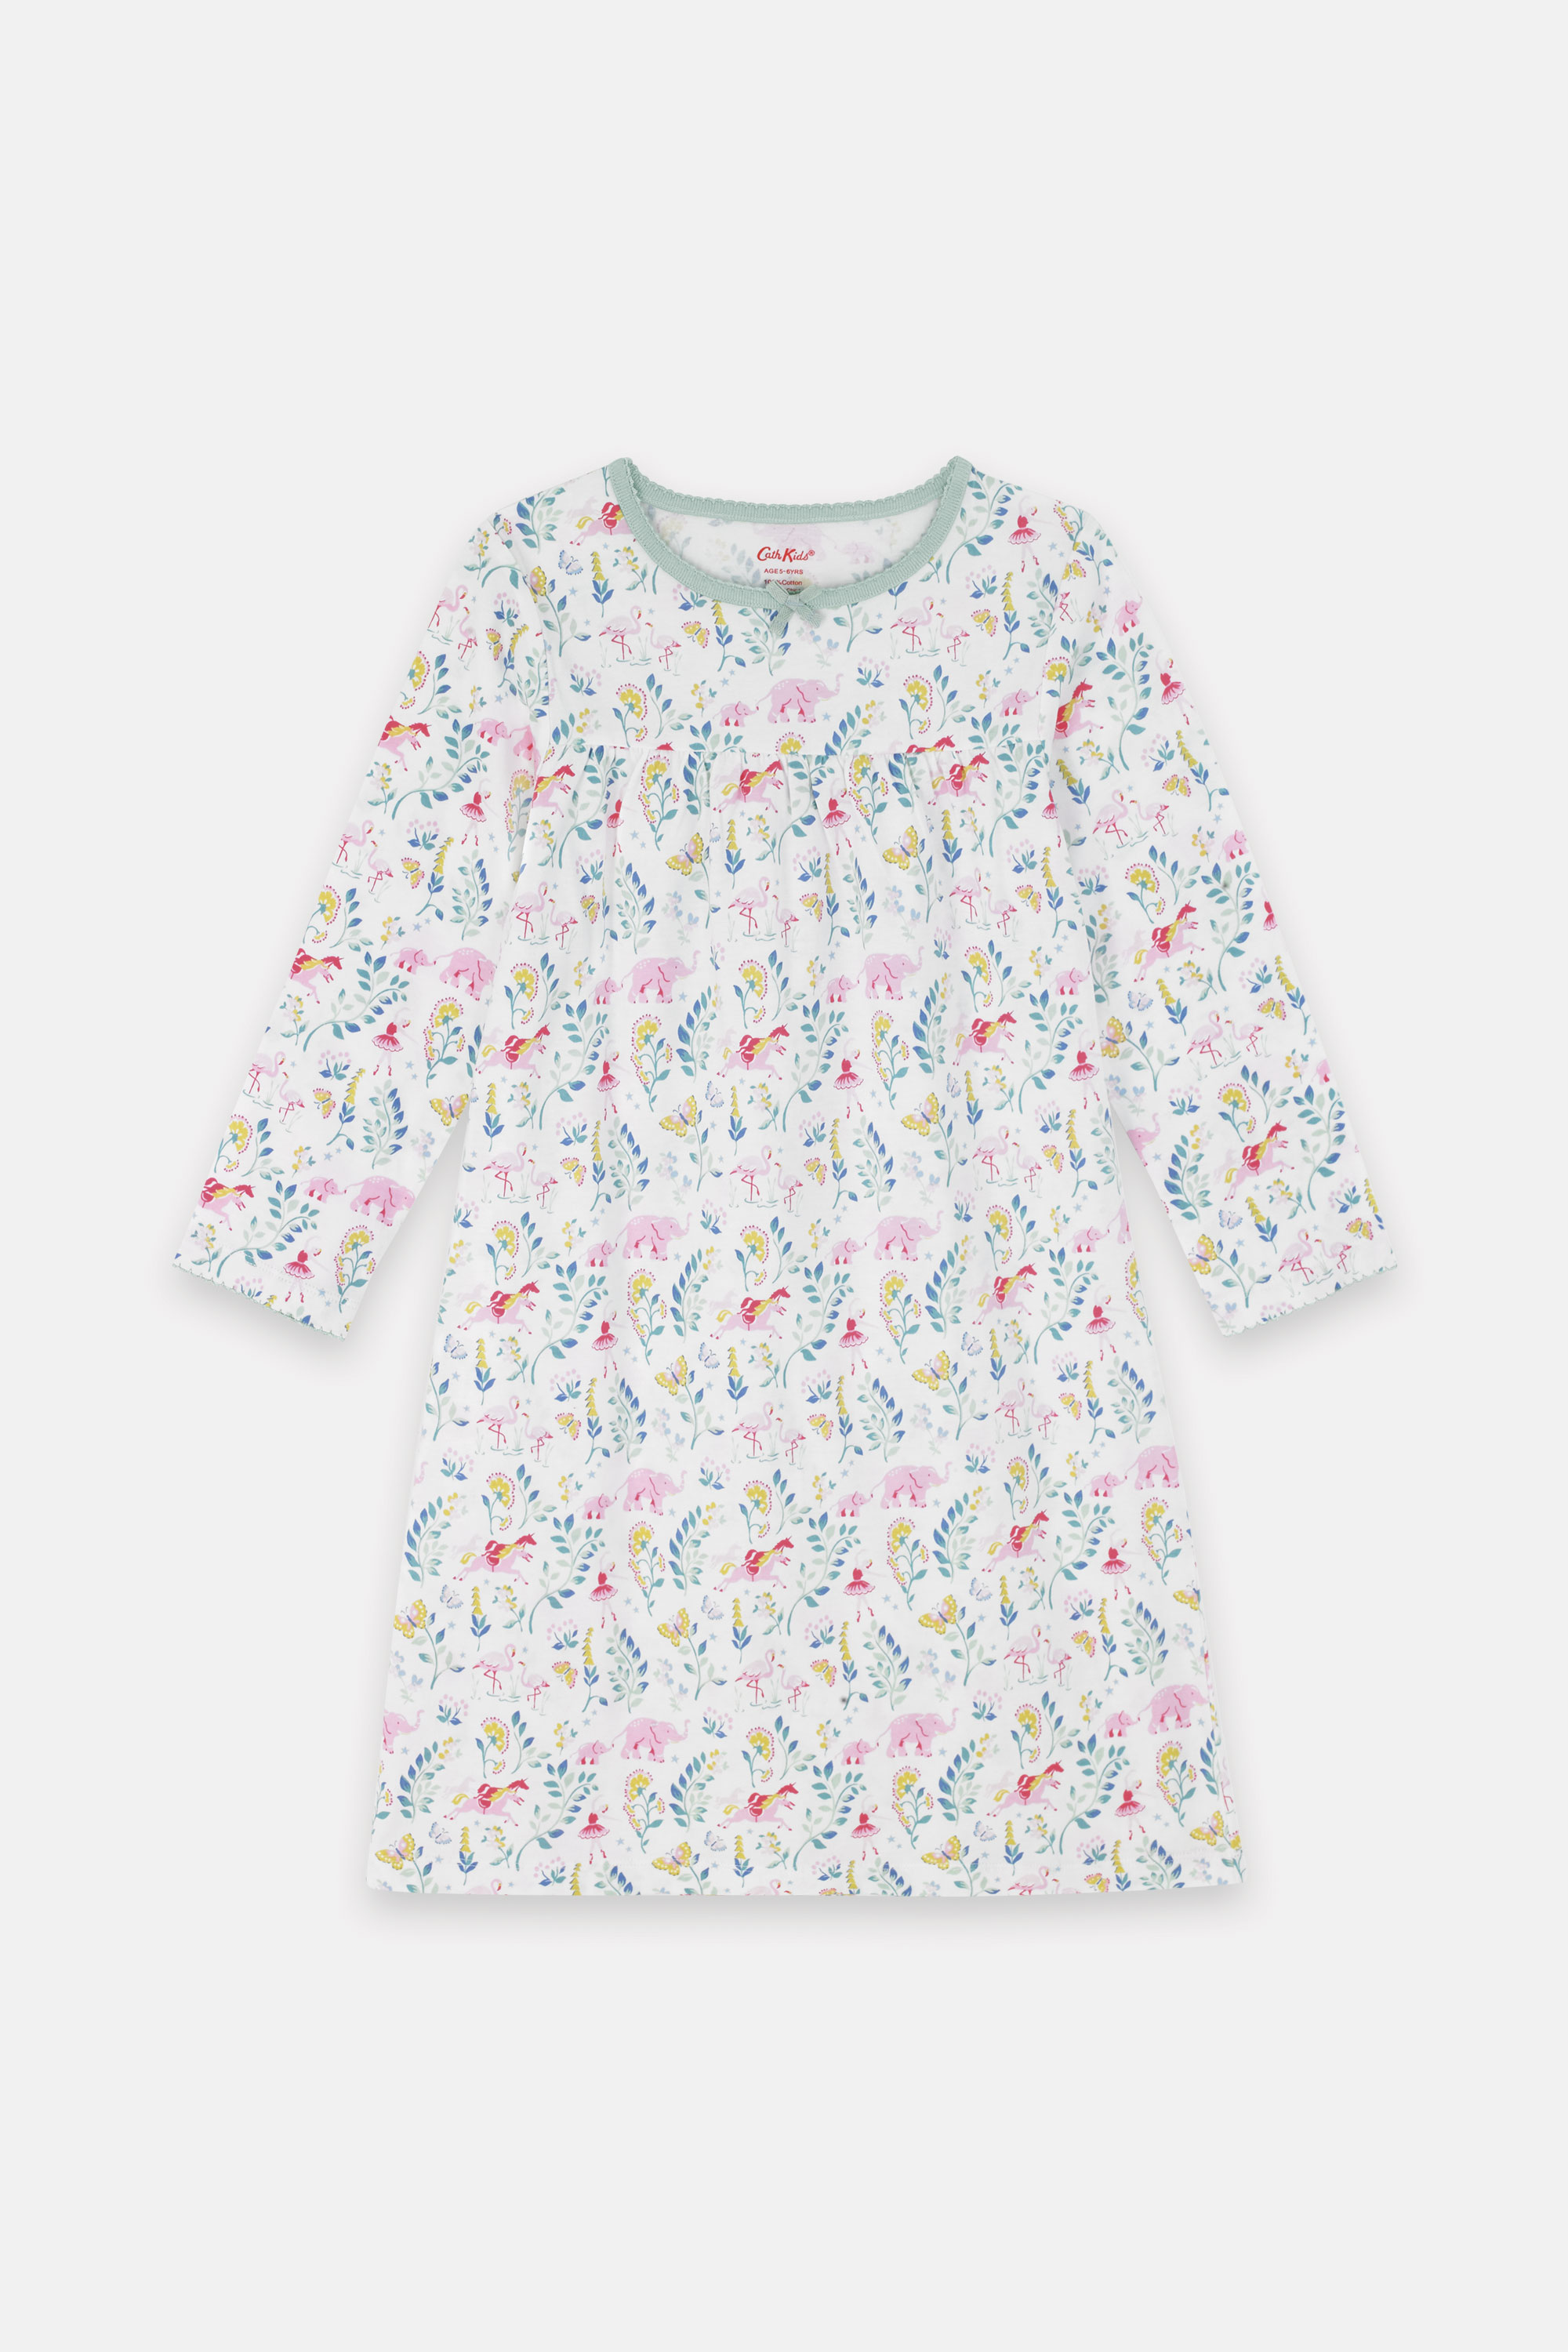 Cath Kidston Fantasy Forest Kids Nightie in Oyster Shell, 100% Cotton, 7-8 yr